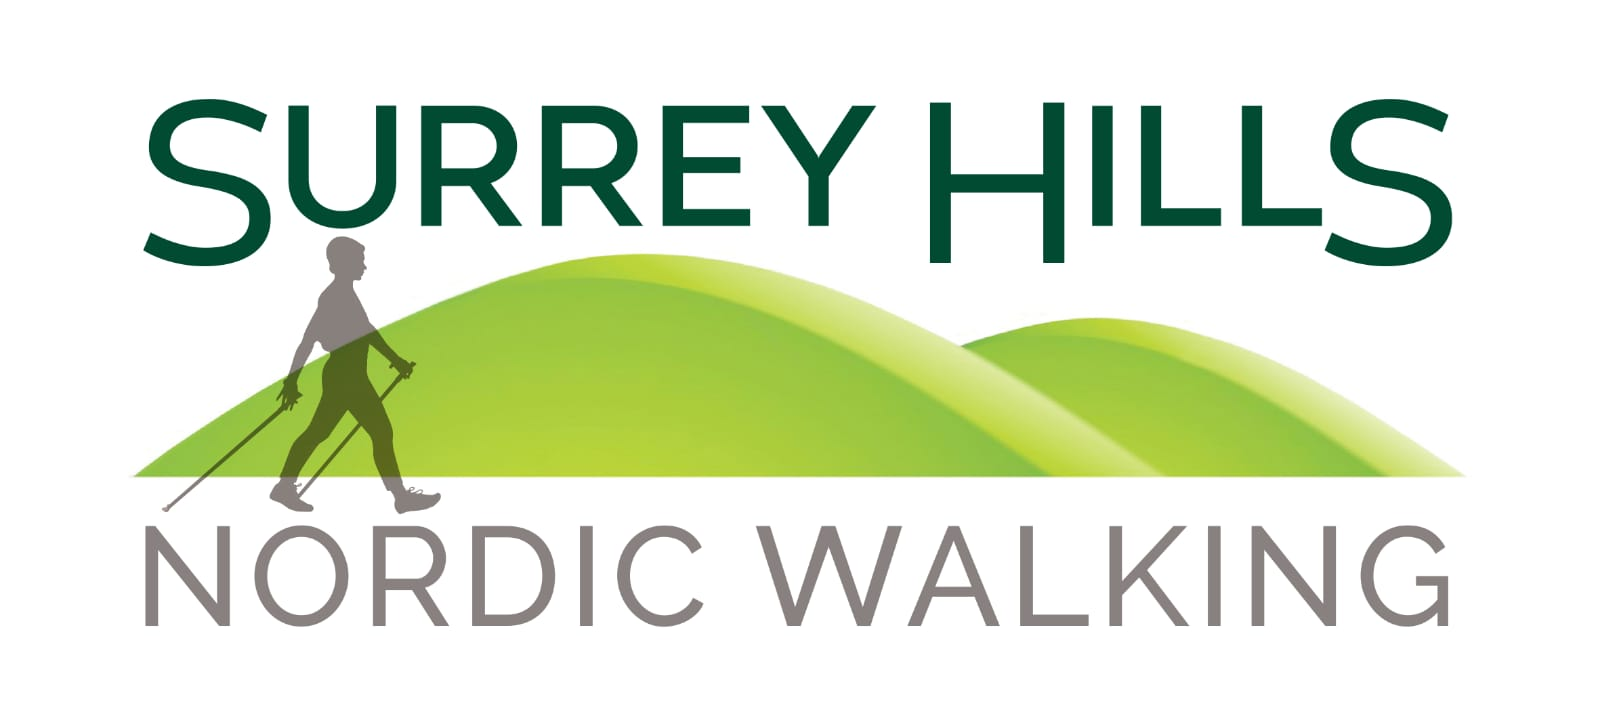 Surrey Hills Nordic Walking